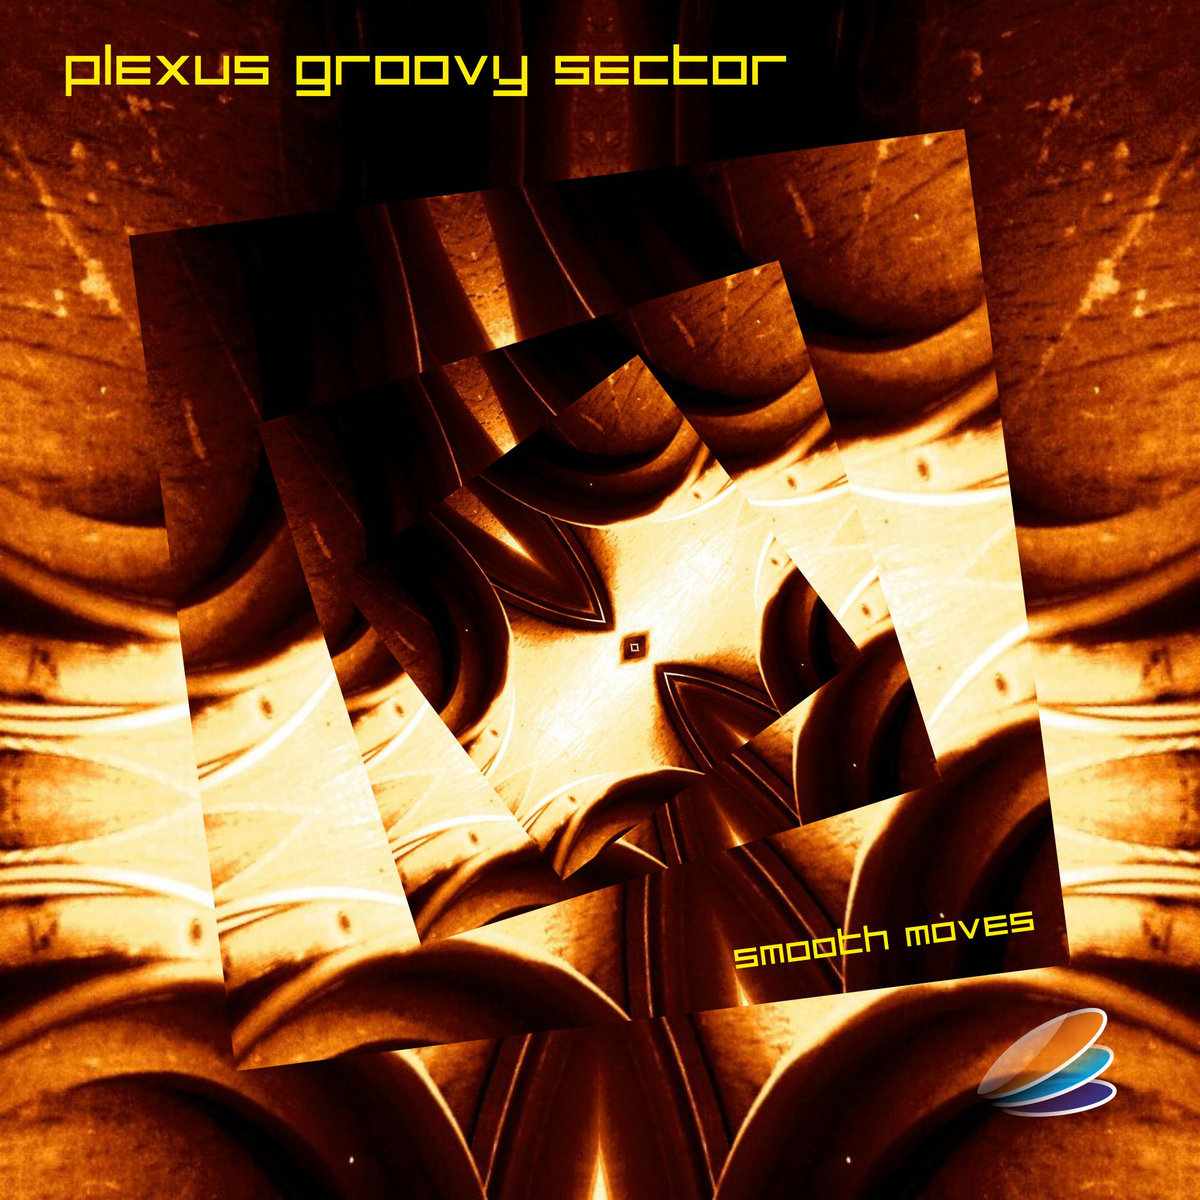 Plexus Groovy Sector - Smooth Moves